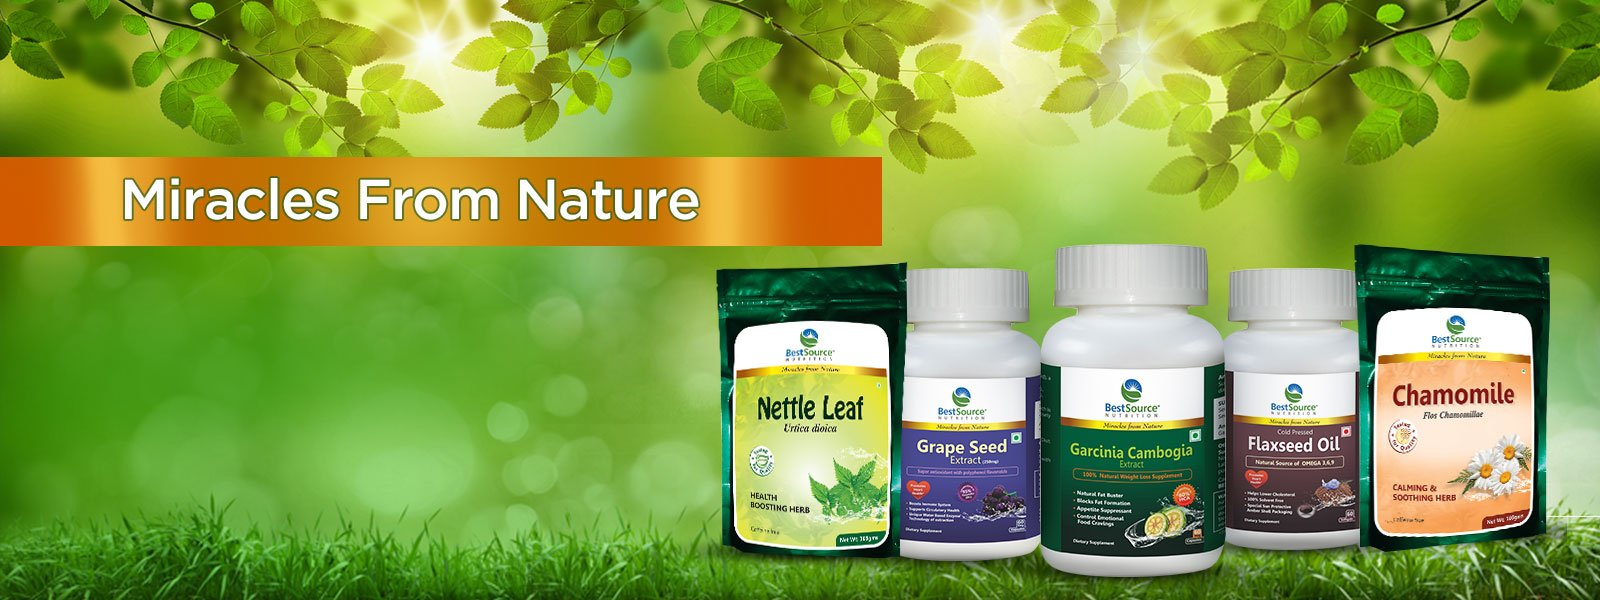 Premium Product Line of Health & Dietary Supplements to Promote Total Wellness and Optimal Body Function